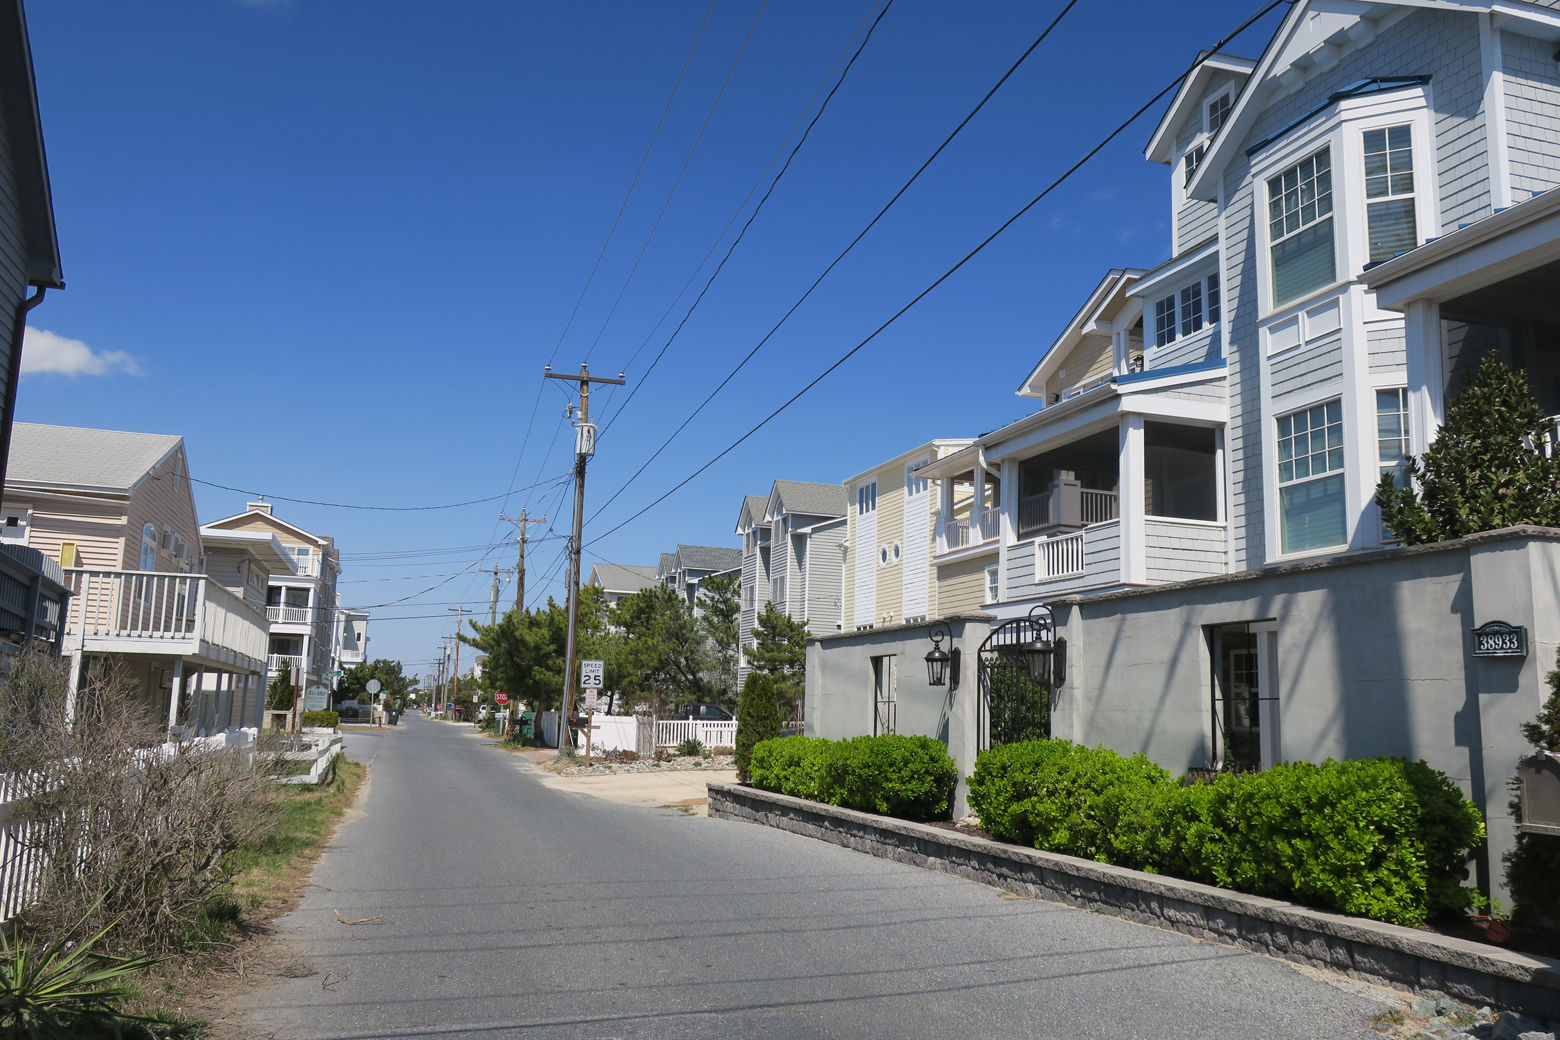 Homes in Fenwick Island, Delaware